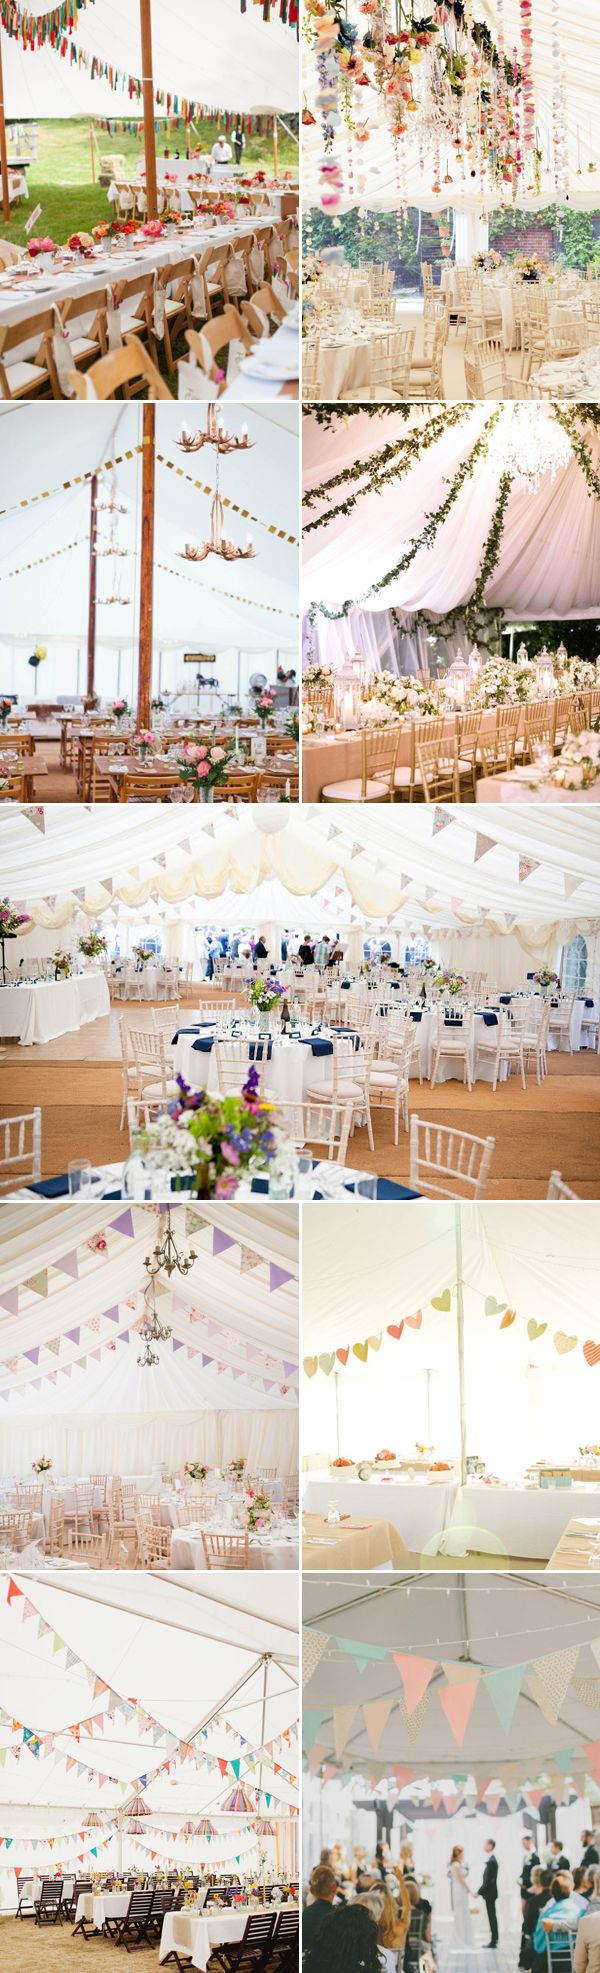 40 Beautiful Ways to Decorate Your Wedding Tent - Bunting and Garland